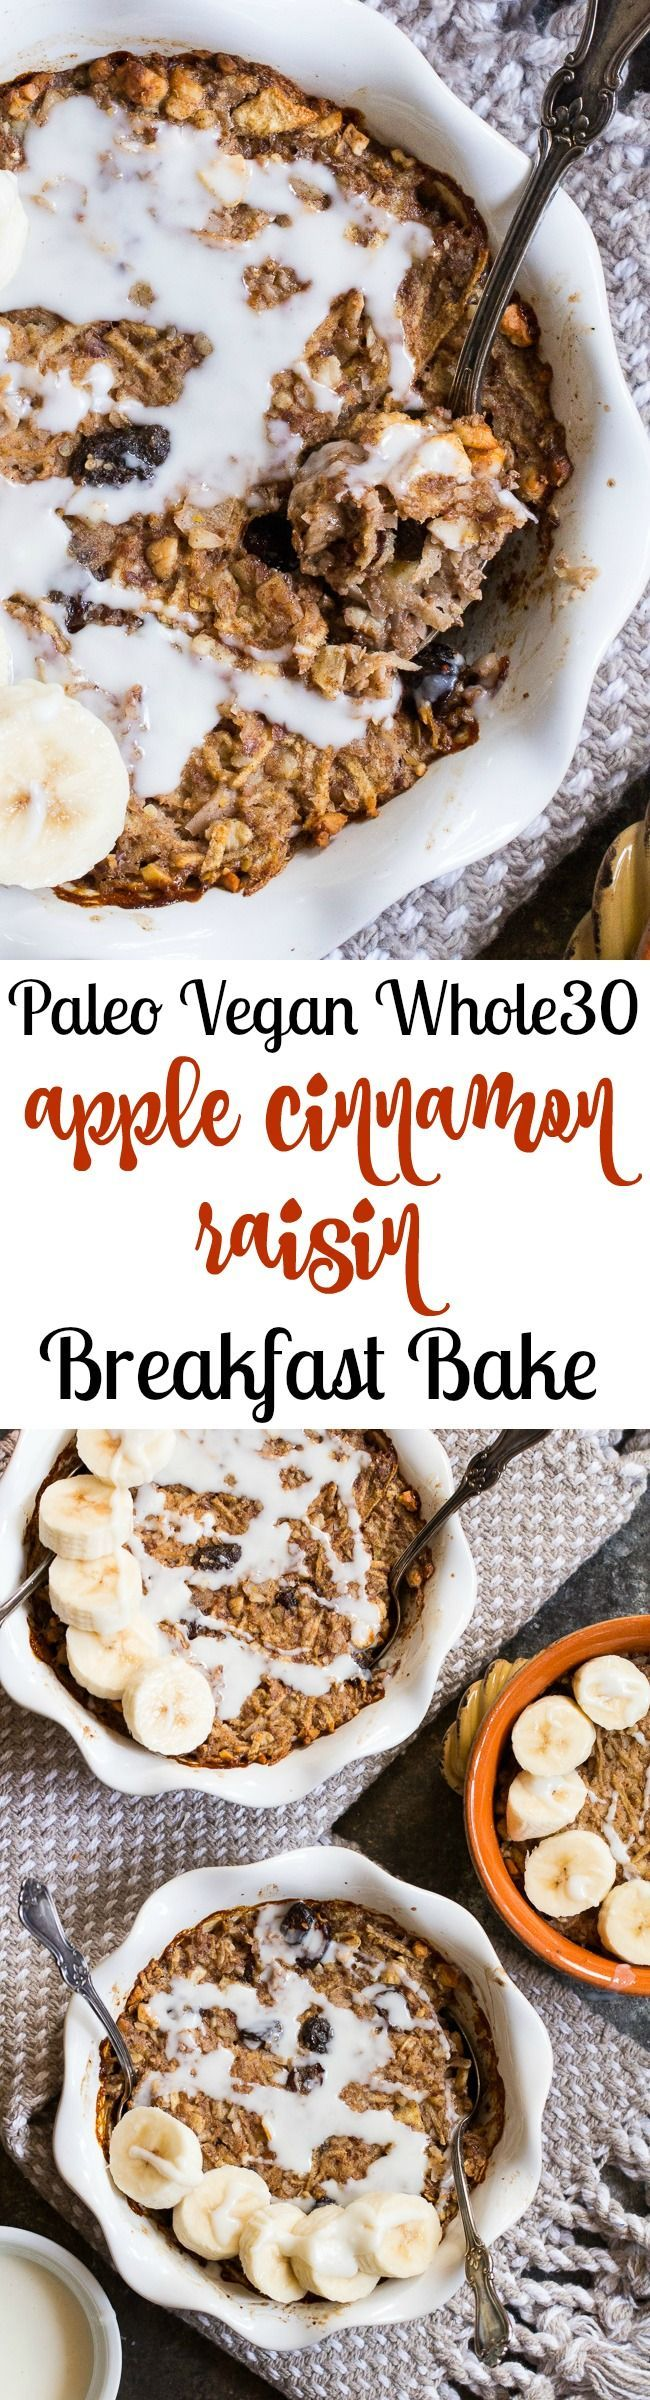 This easy Apple Cinnamon Raisin Breakfast Bake is free of added sugar, Paleo, Whole30 compliant and vegan.  Loaded with flavor and great topped with bananas and drizzled with coconut or nut butter!